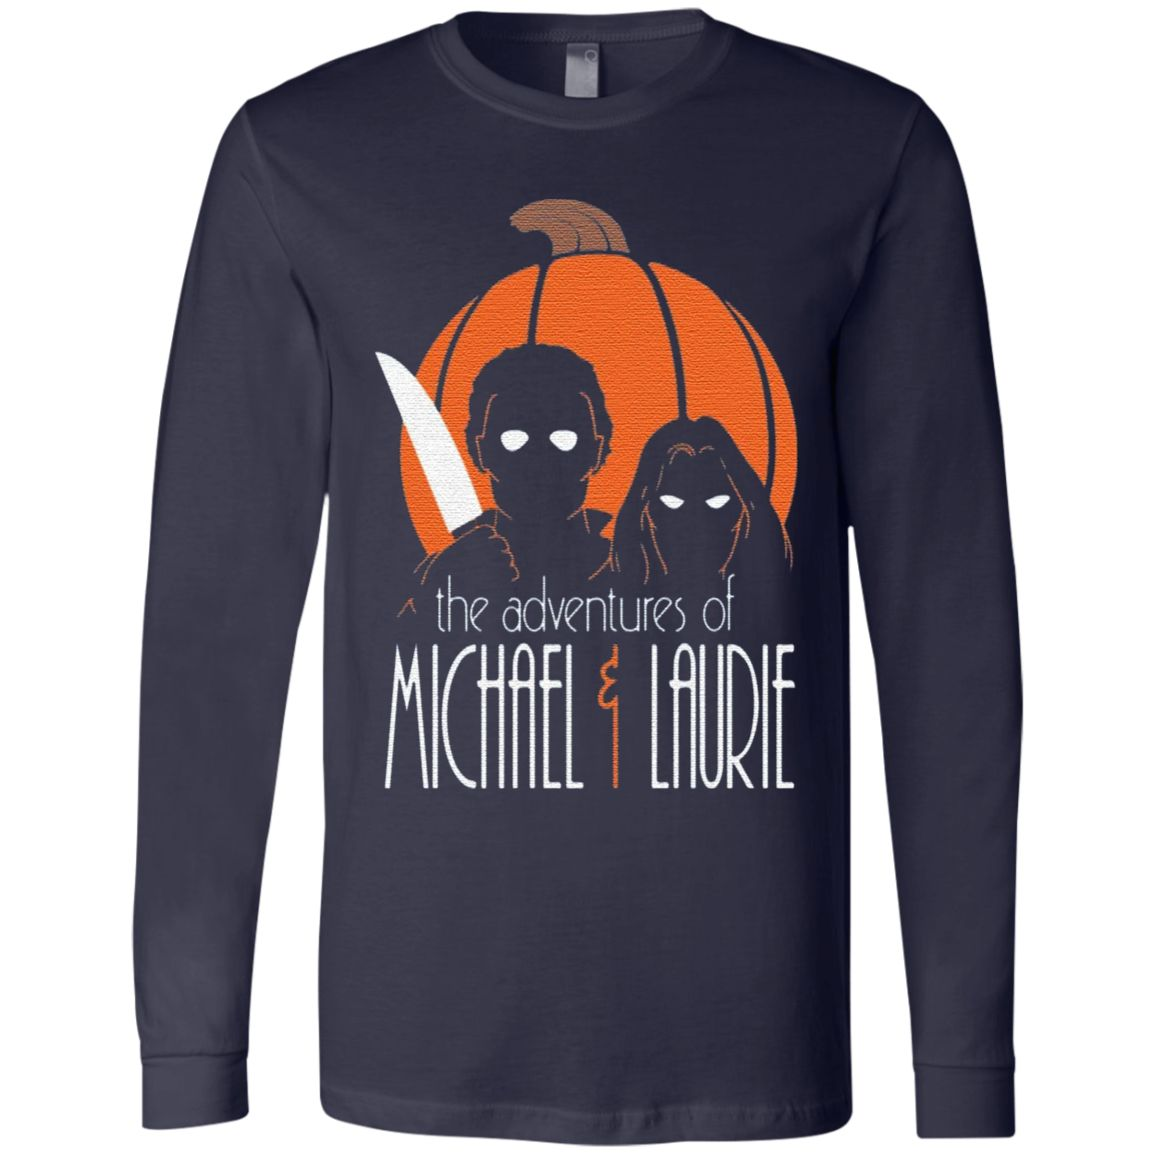 The adventures of Michael and Laurie t shirt